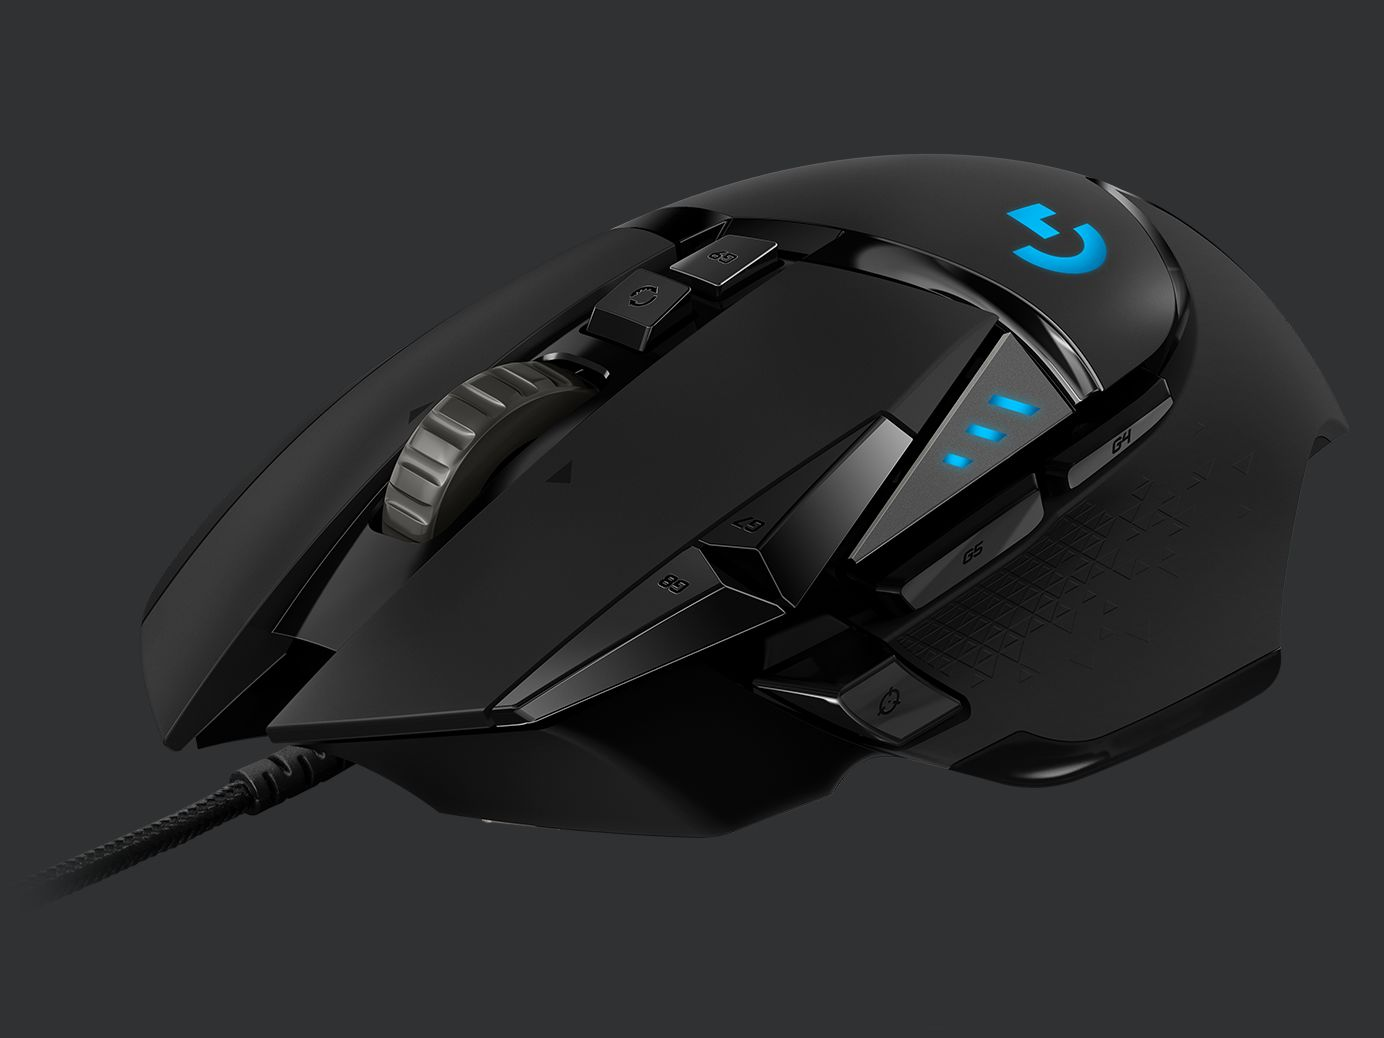 6185eaeb99c A REBORN HERO. G502 HERO features an advanced optical sensor for maximum  tracking accuracy, customizable RGB lighting, custom game ...